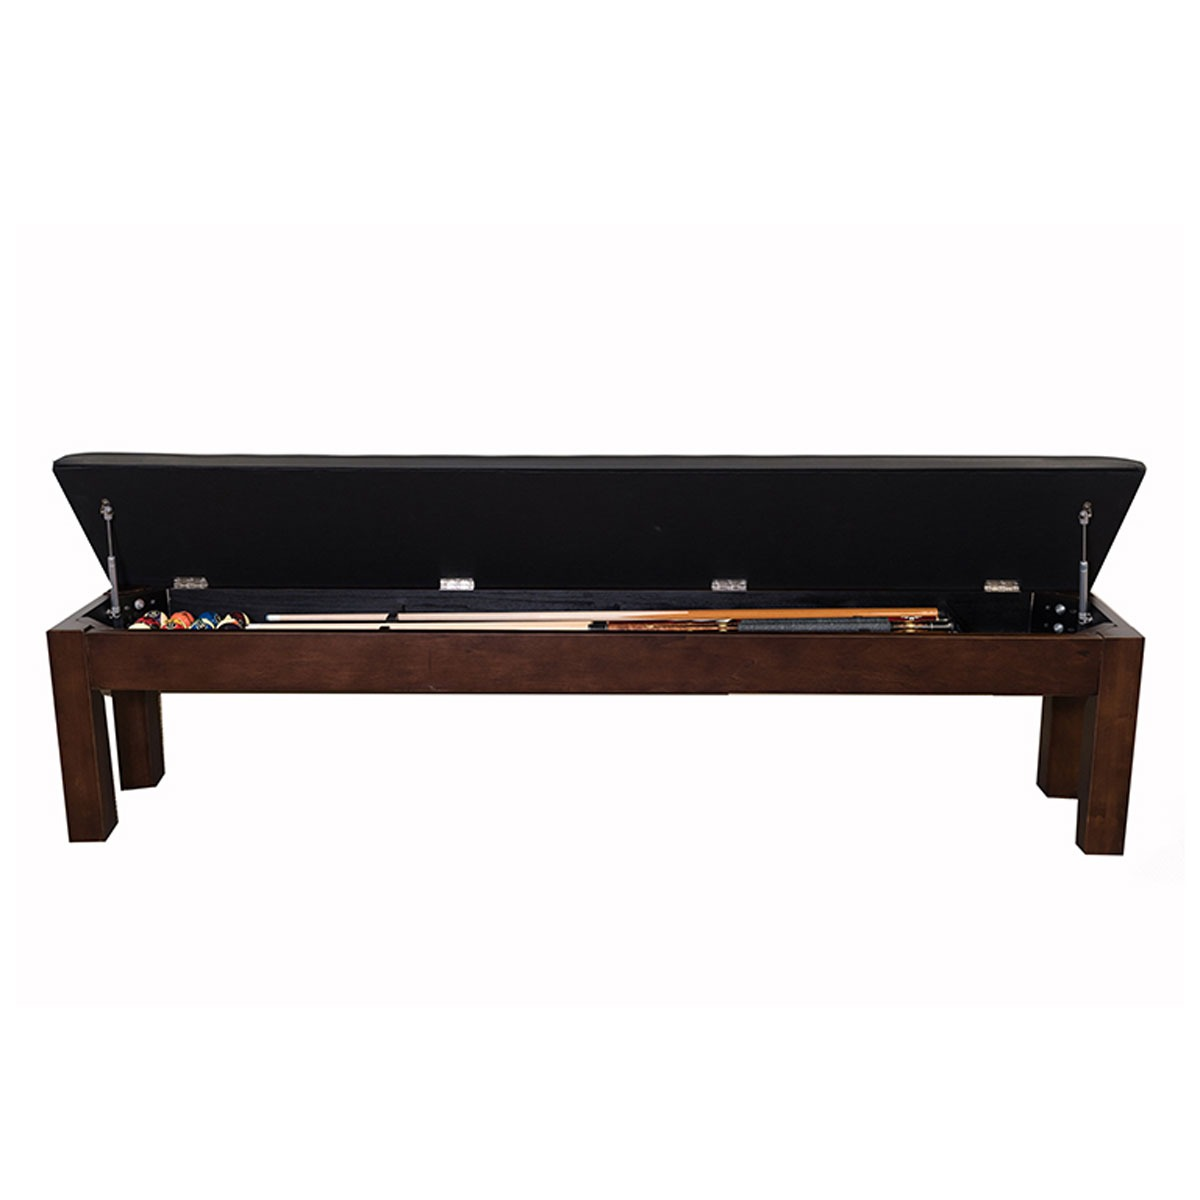 Hamilton Bench Openq - Chatham Pool Table